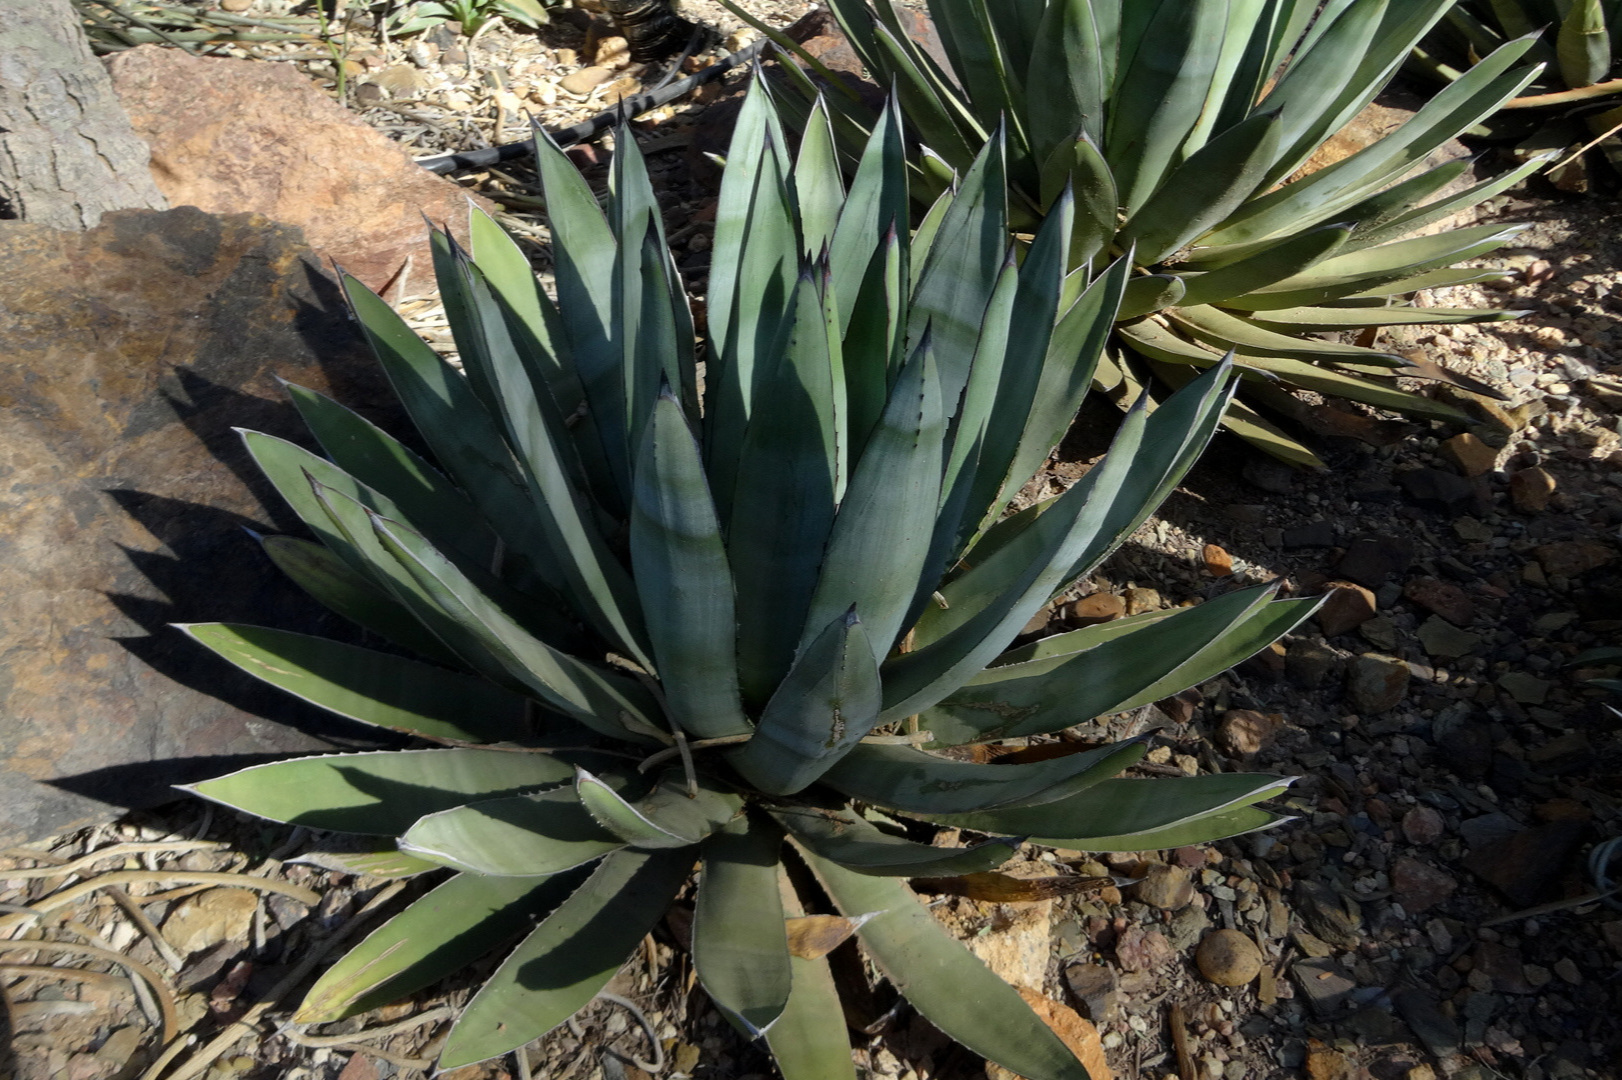 Near mature  Agave  cf. 'Little Shark' at the Desert Botanical Garden, Phoenix, Arizona. Note the short rows of small black tubercles on the lower leaf tips tips of both this example and the previous plant.